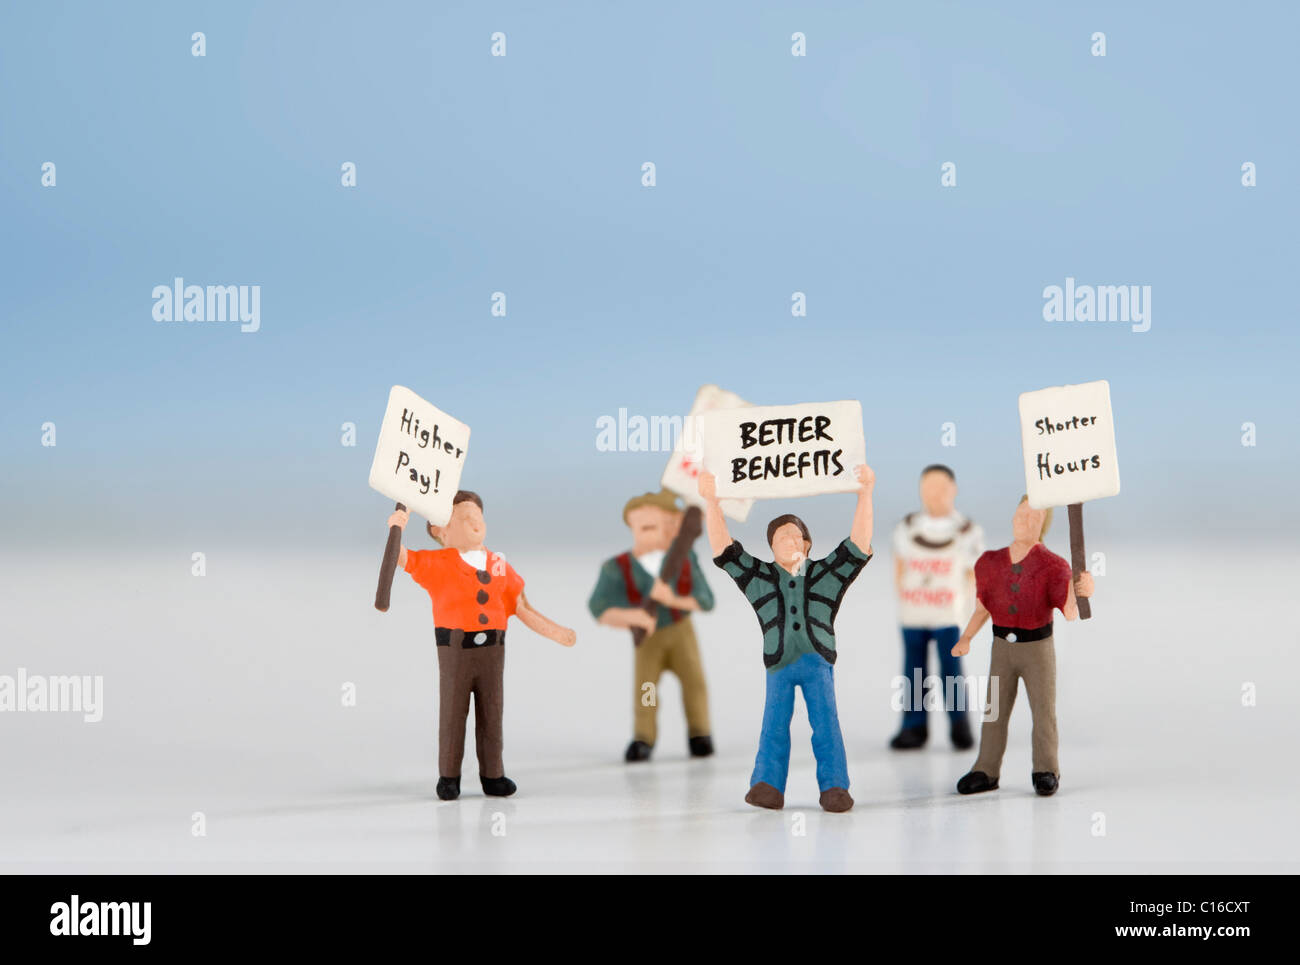 Model figures representing protestors in the street carrying slogans and placards - Stock Image